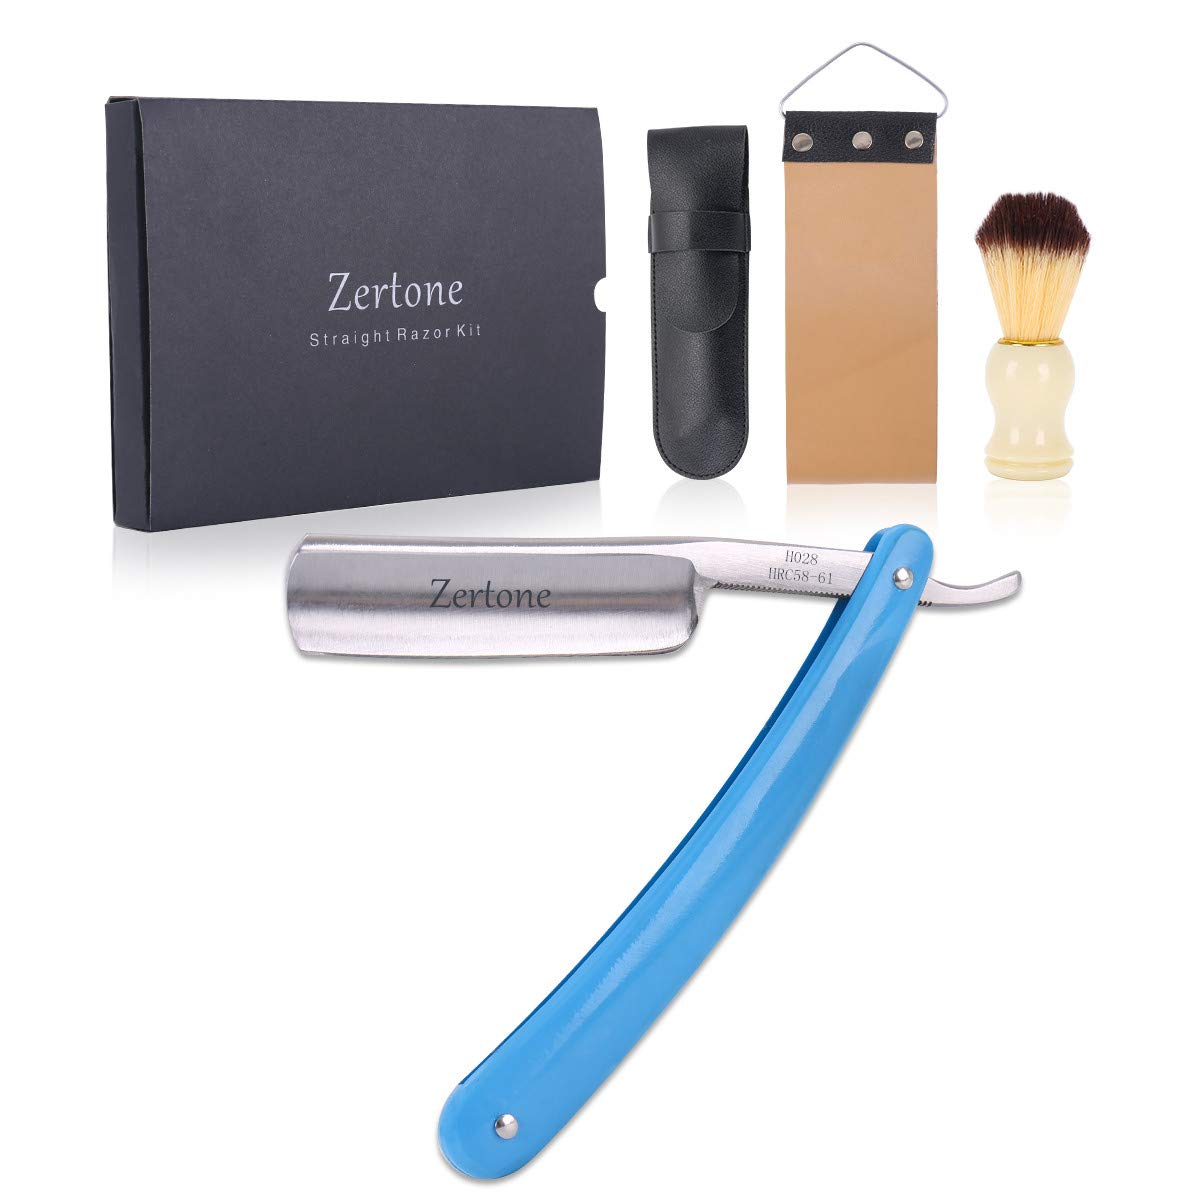 Zertone Straight Max 57% OFF Max 48% OFF Razor Kit with Hair and Leather Brush St Strop